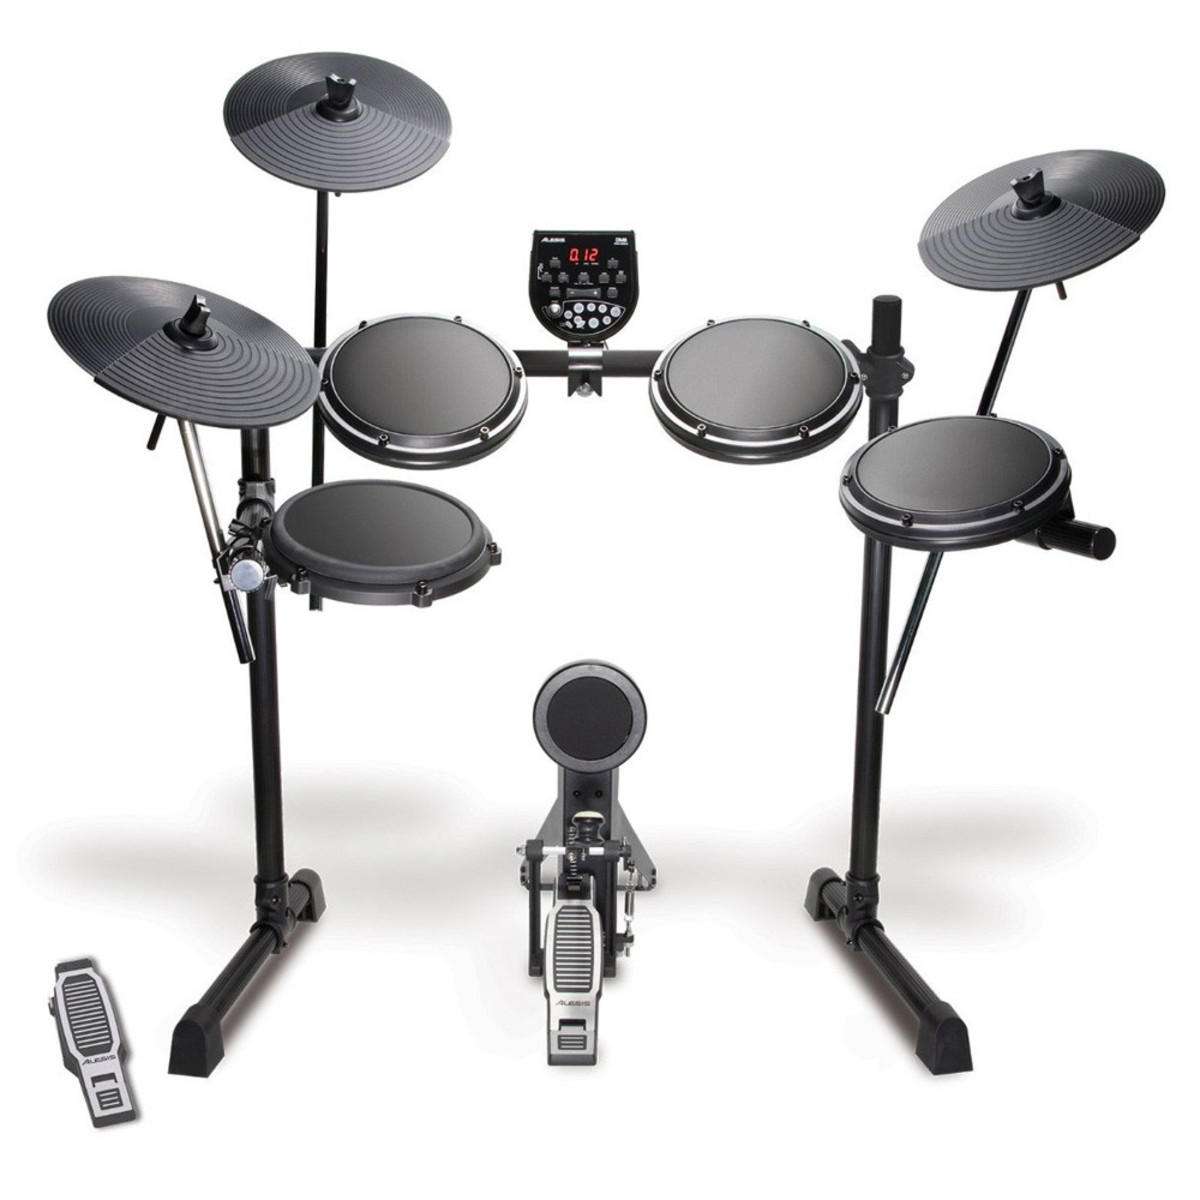 disc alesis dm6 usb electronic drum kit stool headphones sticks at gear4music. Black Bedroom Furniture Sets. Home Design Ideas